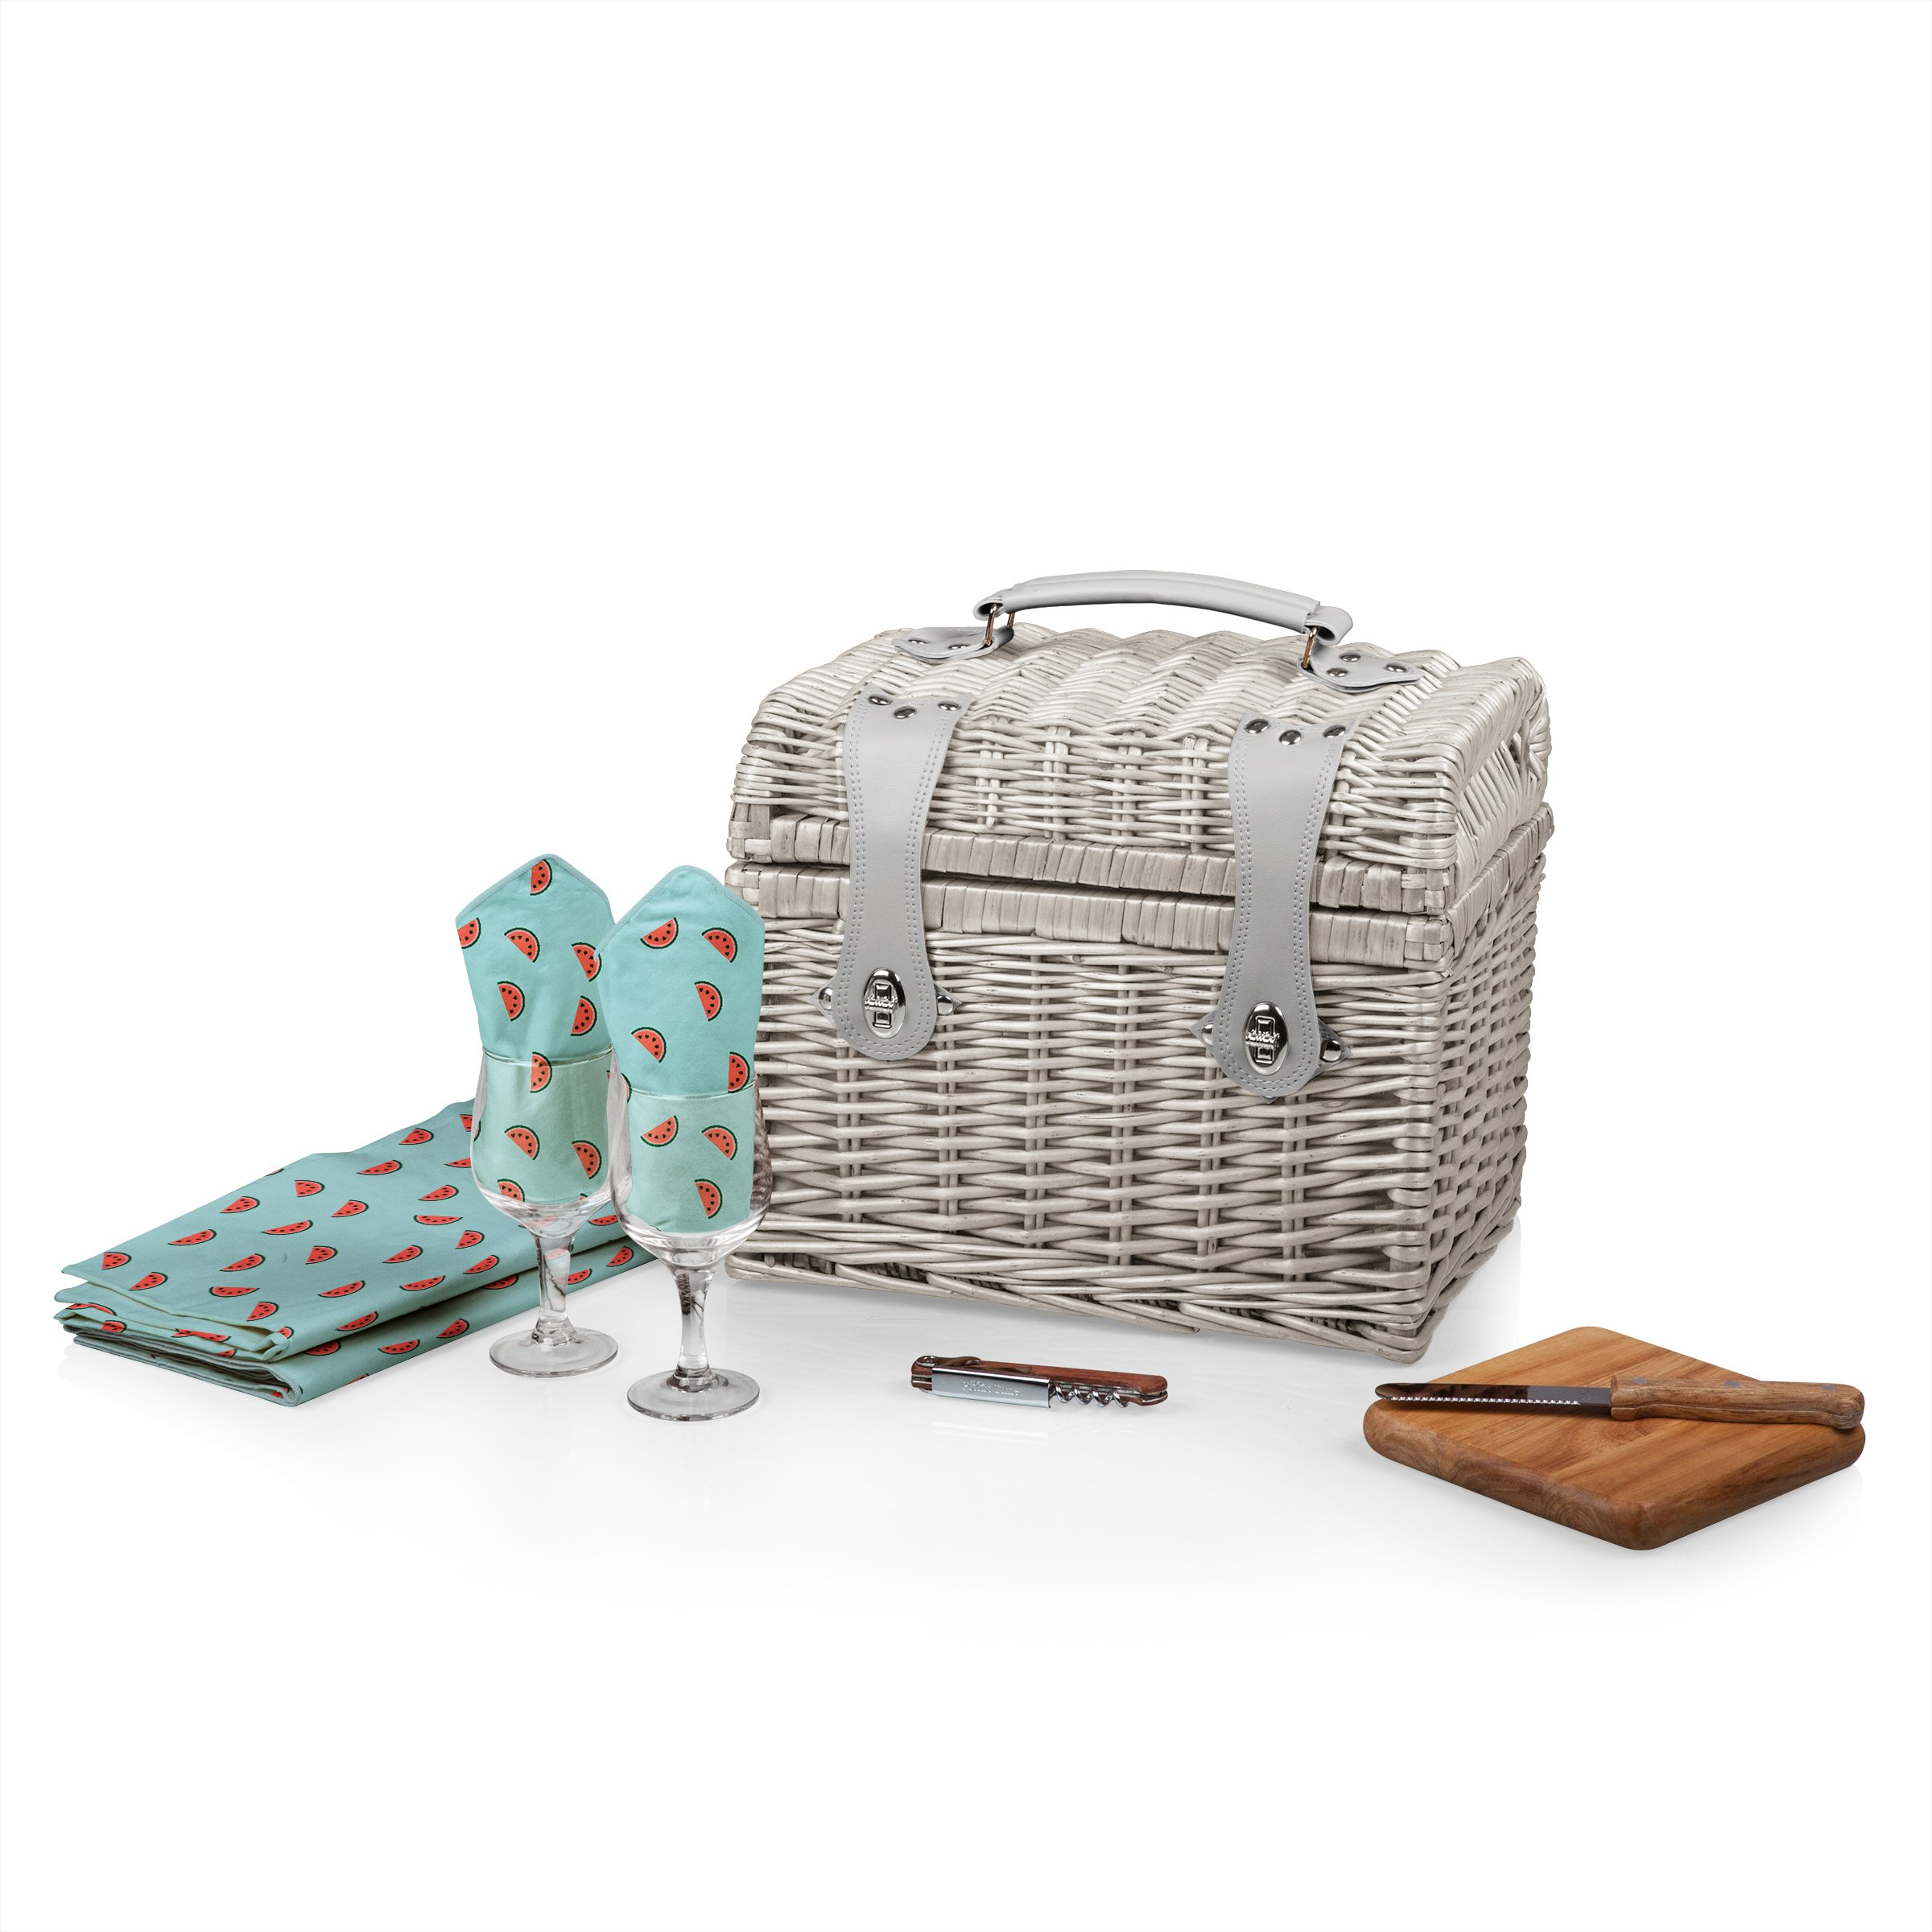 PICNIC TIME 'Napa' Picnic Basket with Wine and Cheese Service for Two, Watermelon Collection